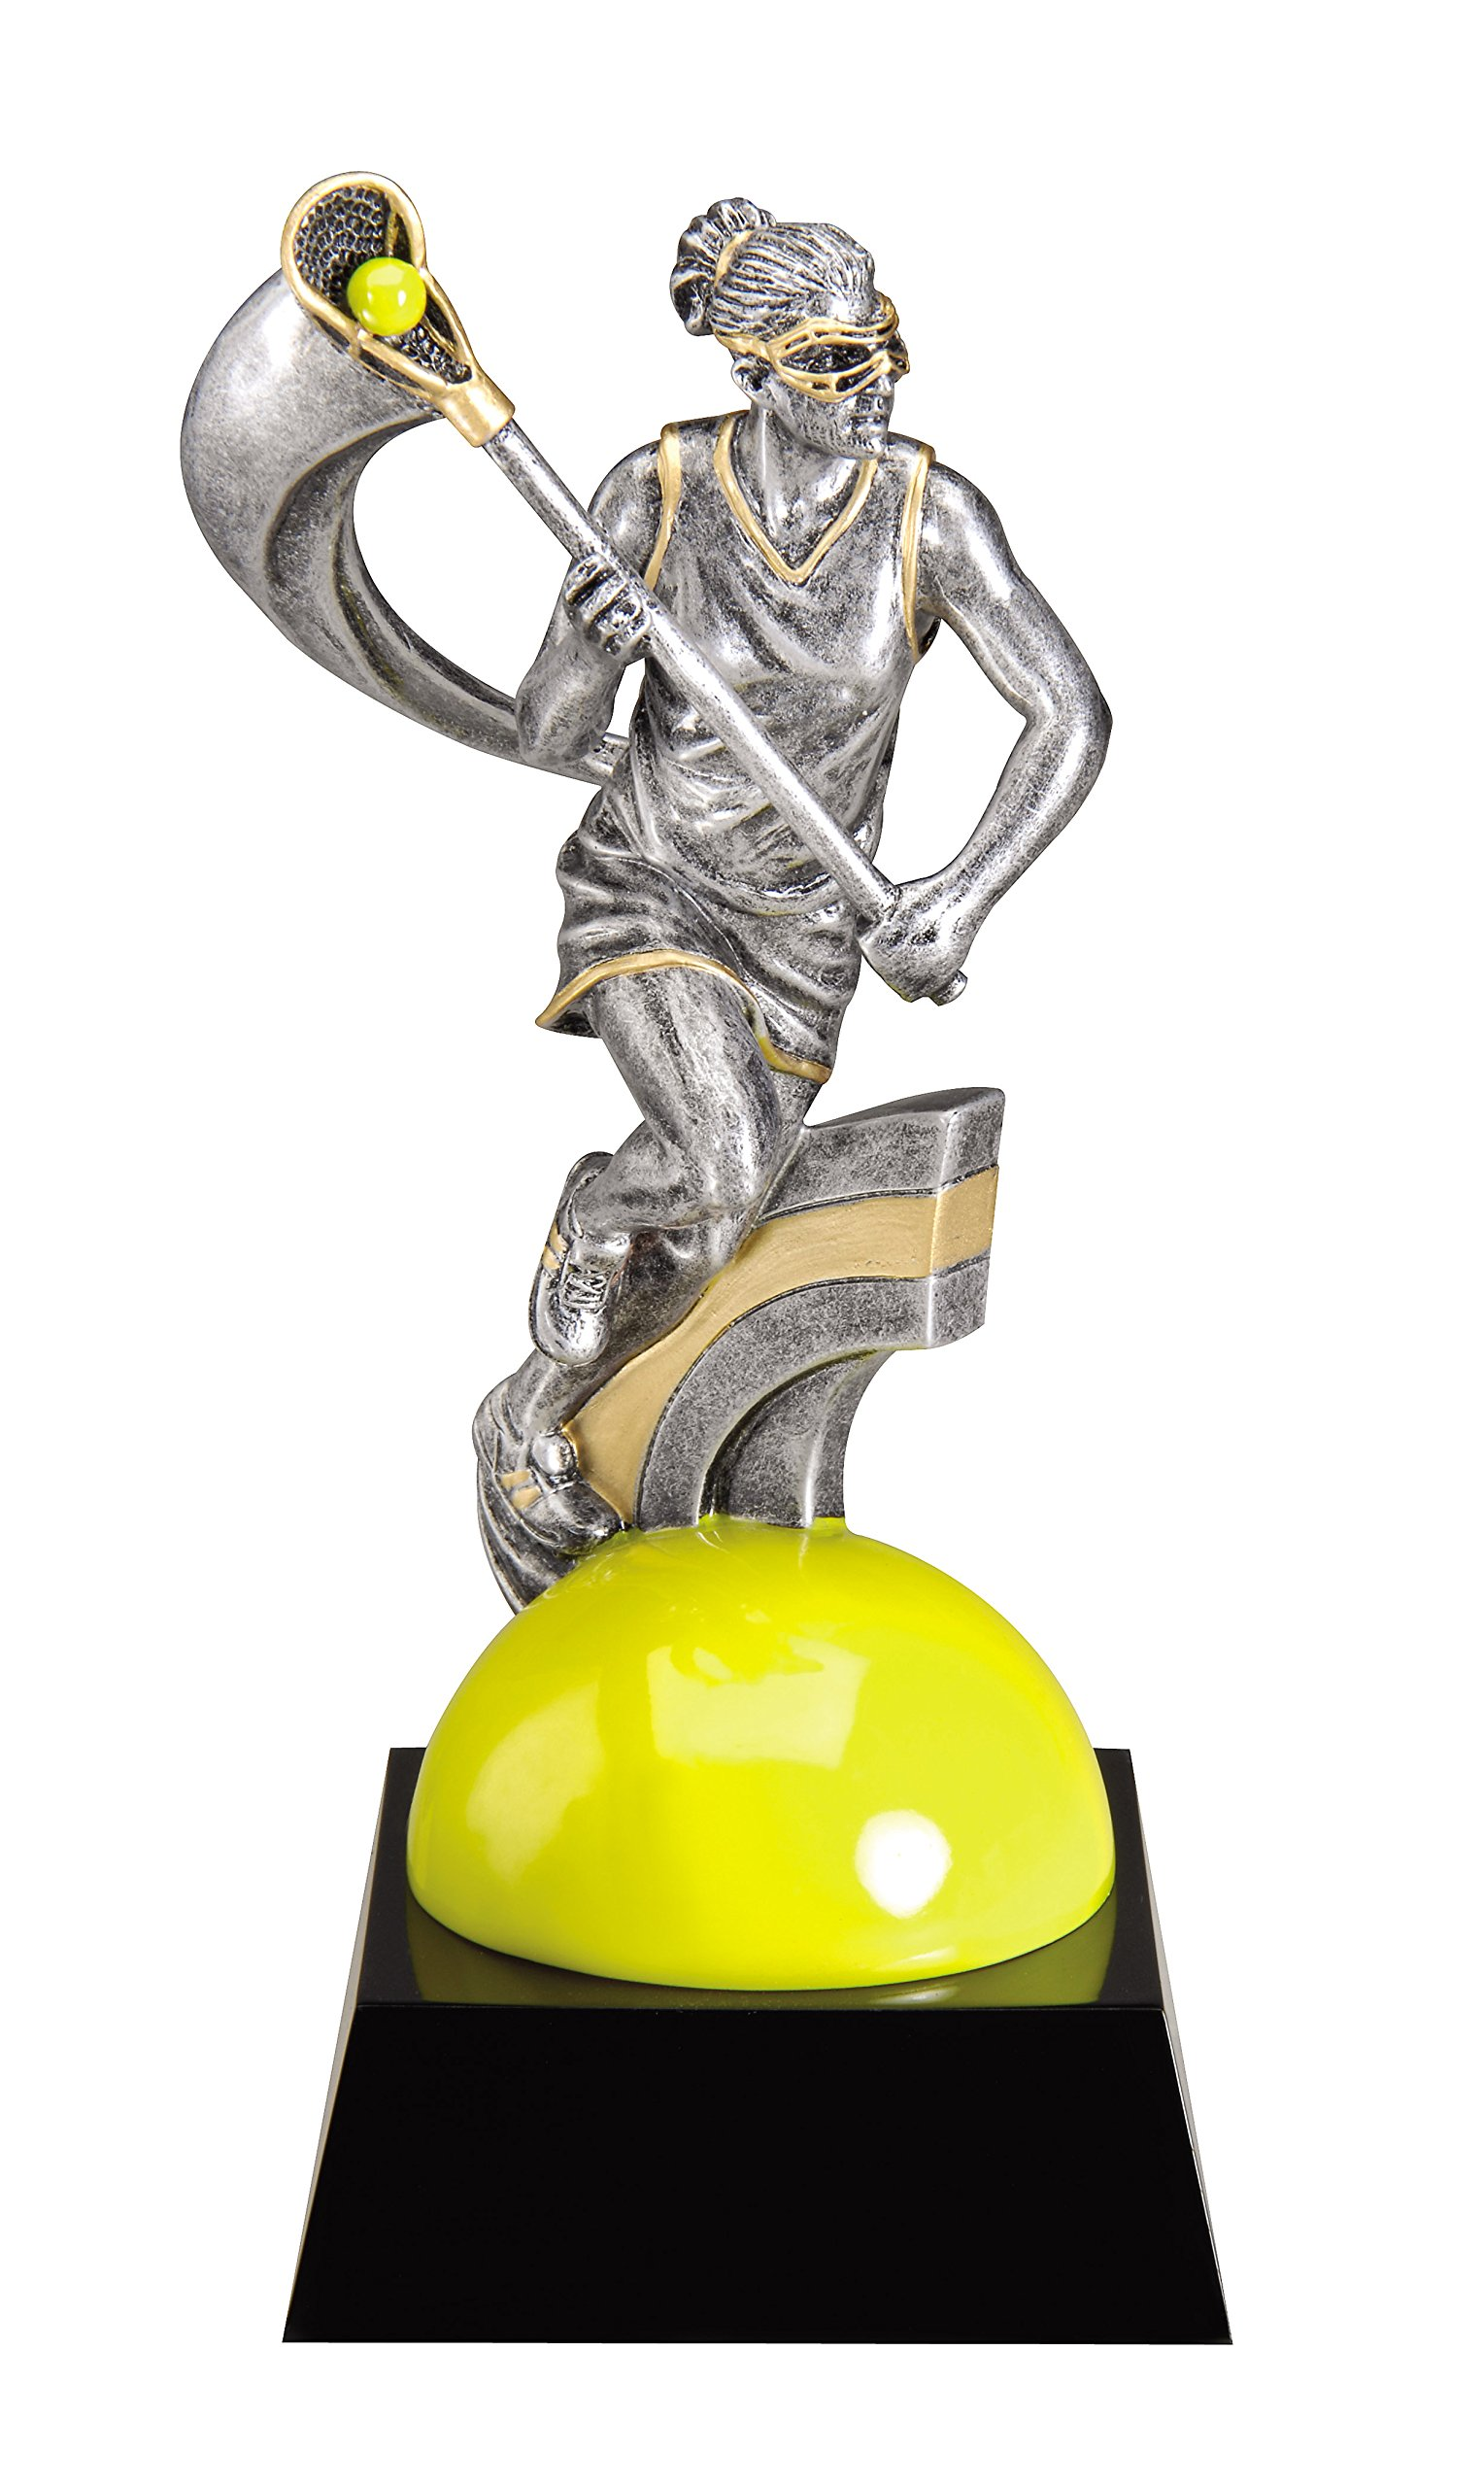 Etch Workz Resin Design Customize Award - MX738 Series Motion Xtreme Female Lacrosse Resin Trophy - Engraved Gold Plated & Personalized Free